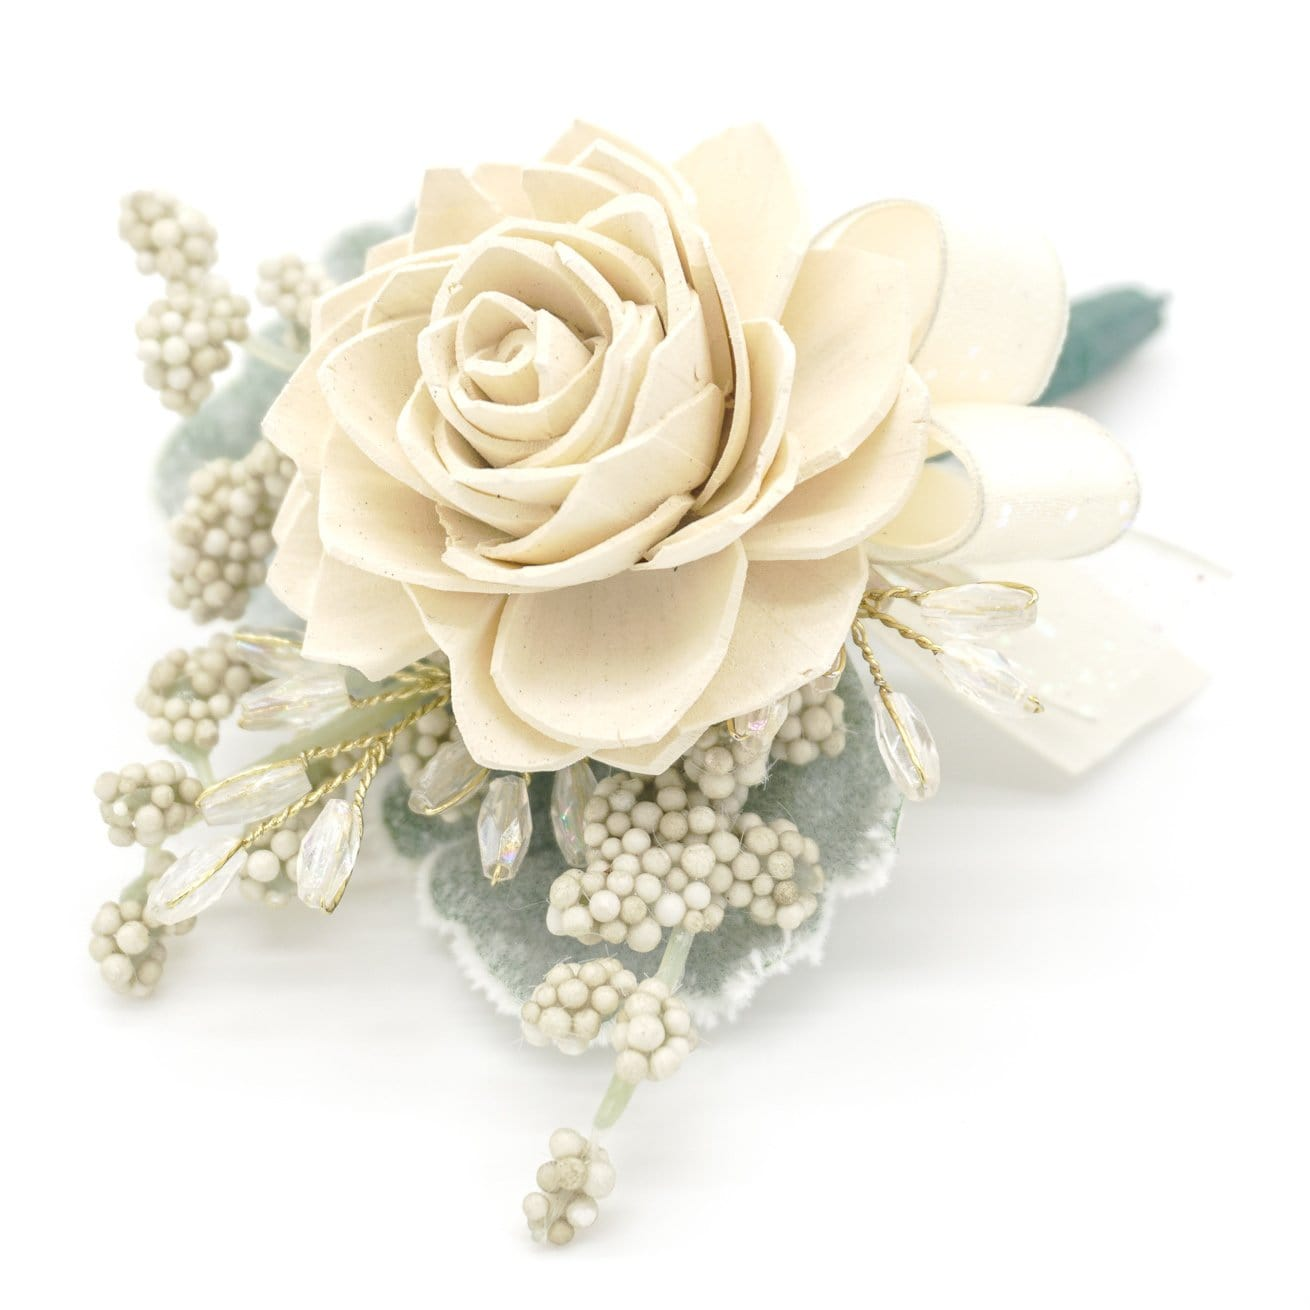 Formal Cream Boutonniere